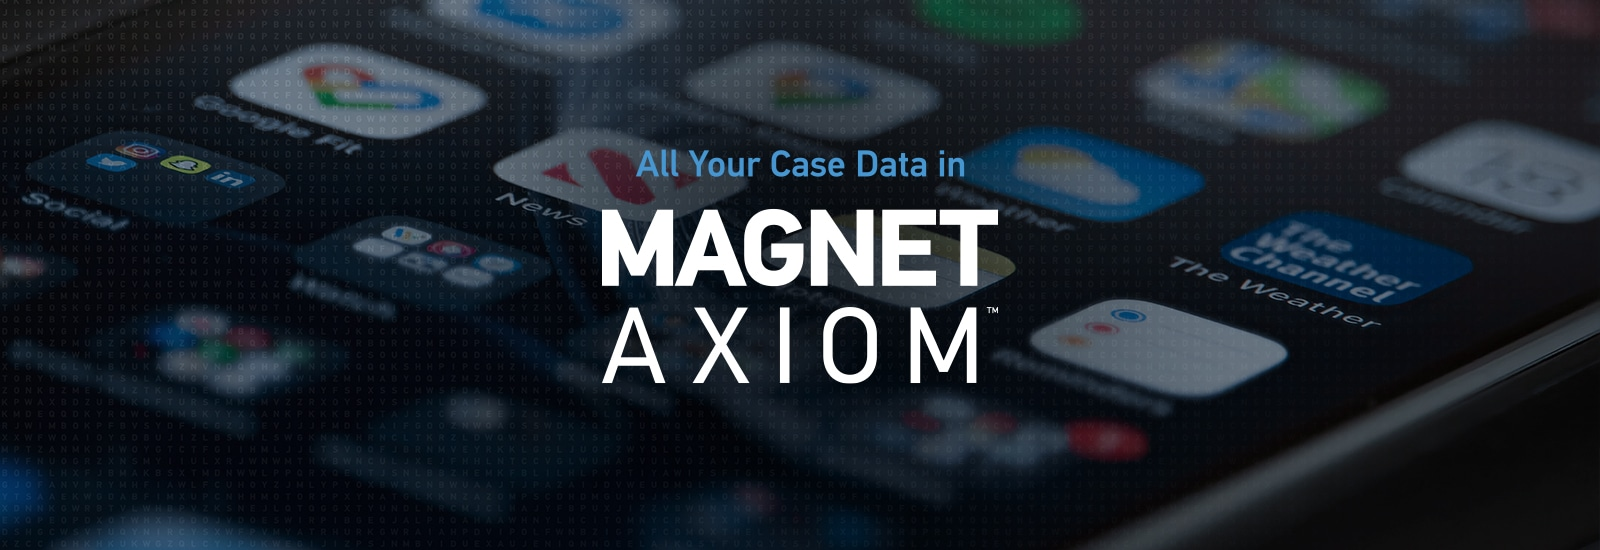 AXIOM All in One - Mobile